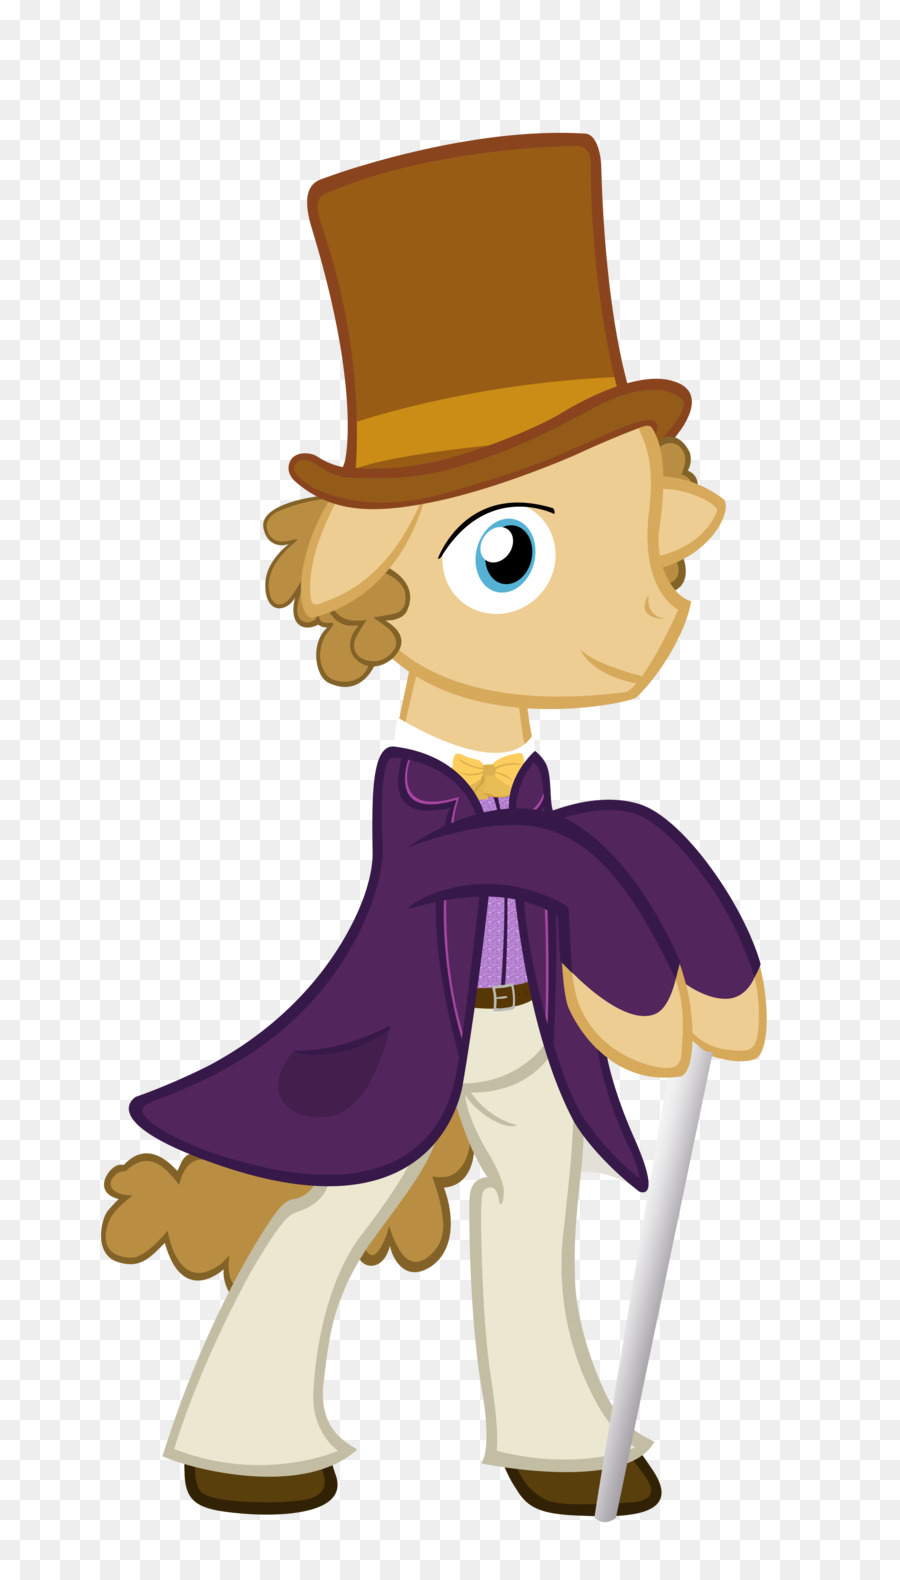 Willy wonka cartoon clipart clip black and white Pinkie Pie clipart - Clothing, Cartoon, Purple, transparent ... clip black and white